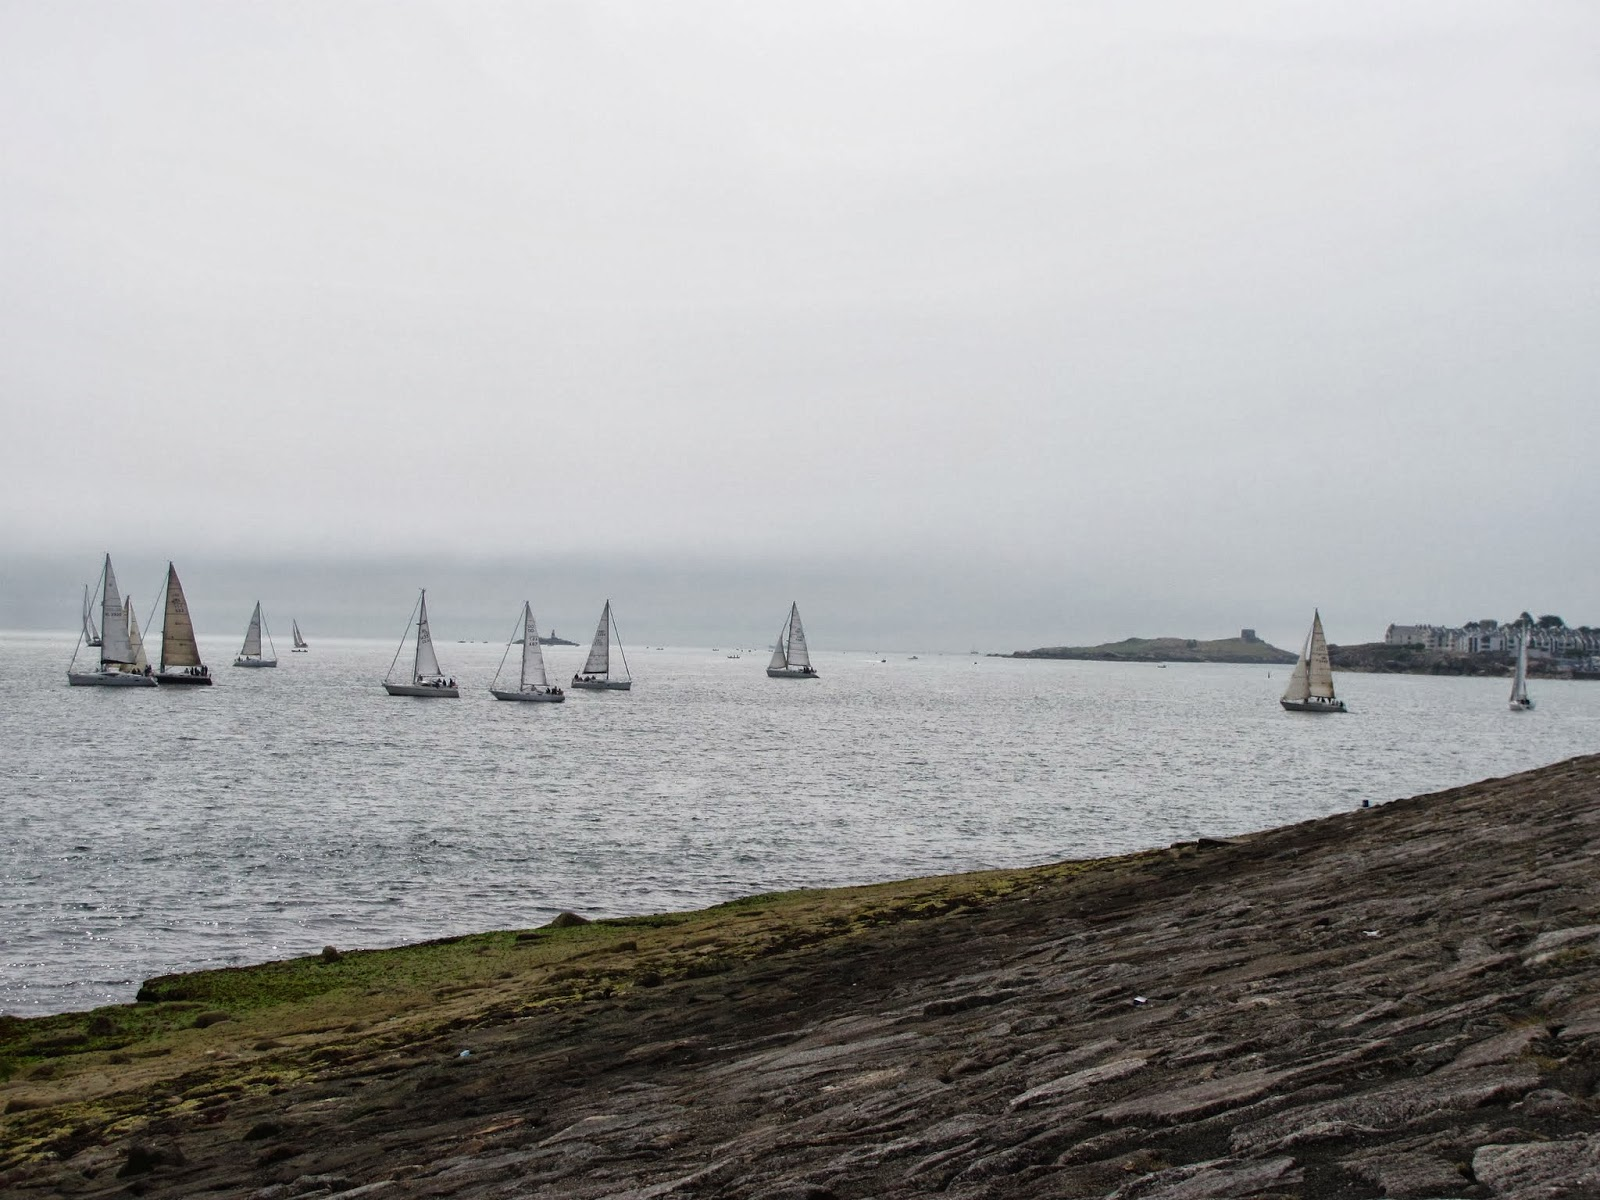 Sailboats are grouped together in Dublin Bay at Dun Laoghaire, Co. Dublin, Ireland